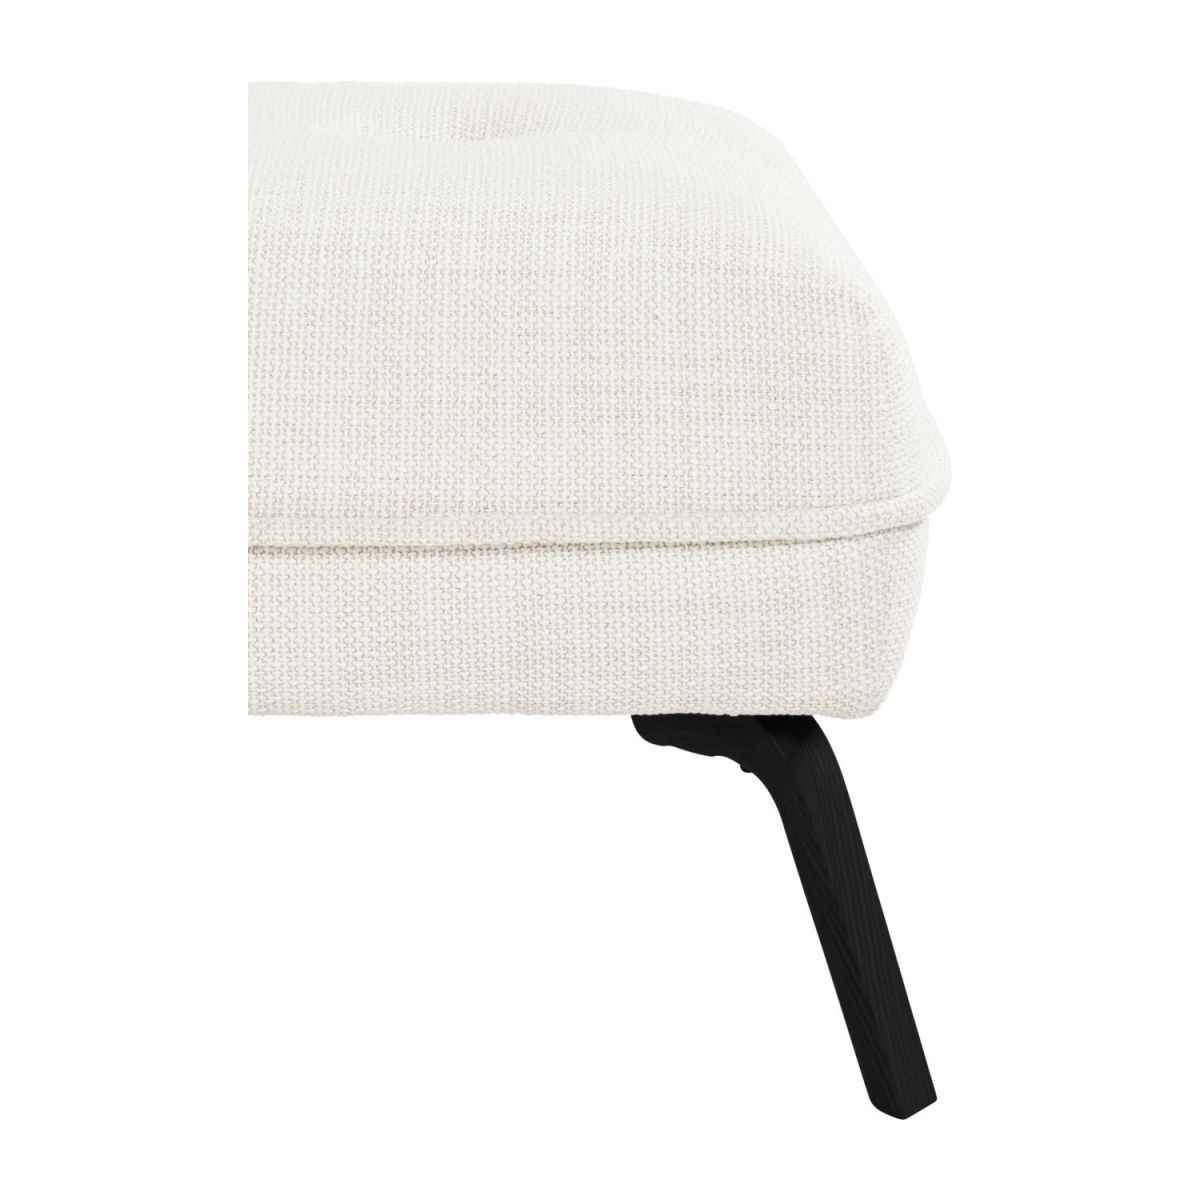 Footstool in Fasoli fabric, snow white and dark legs n°5